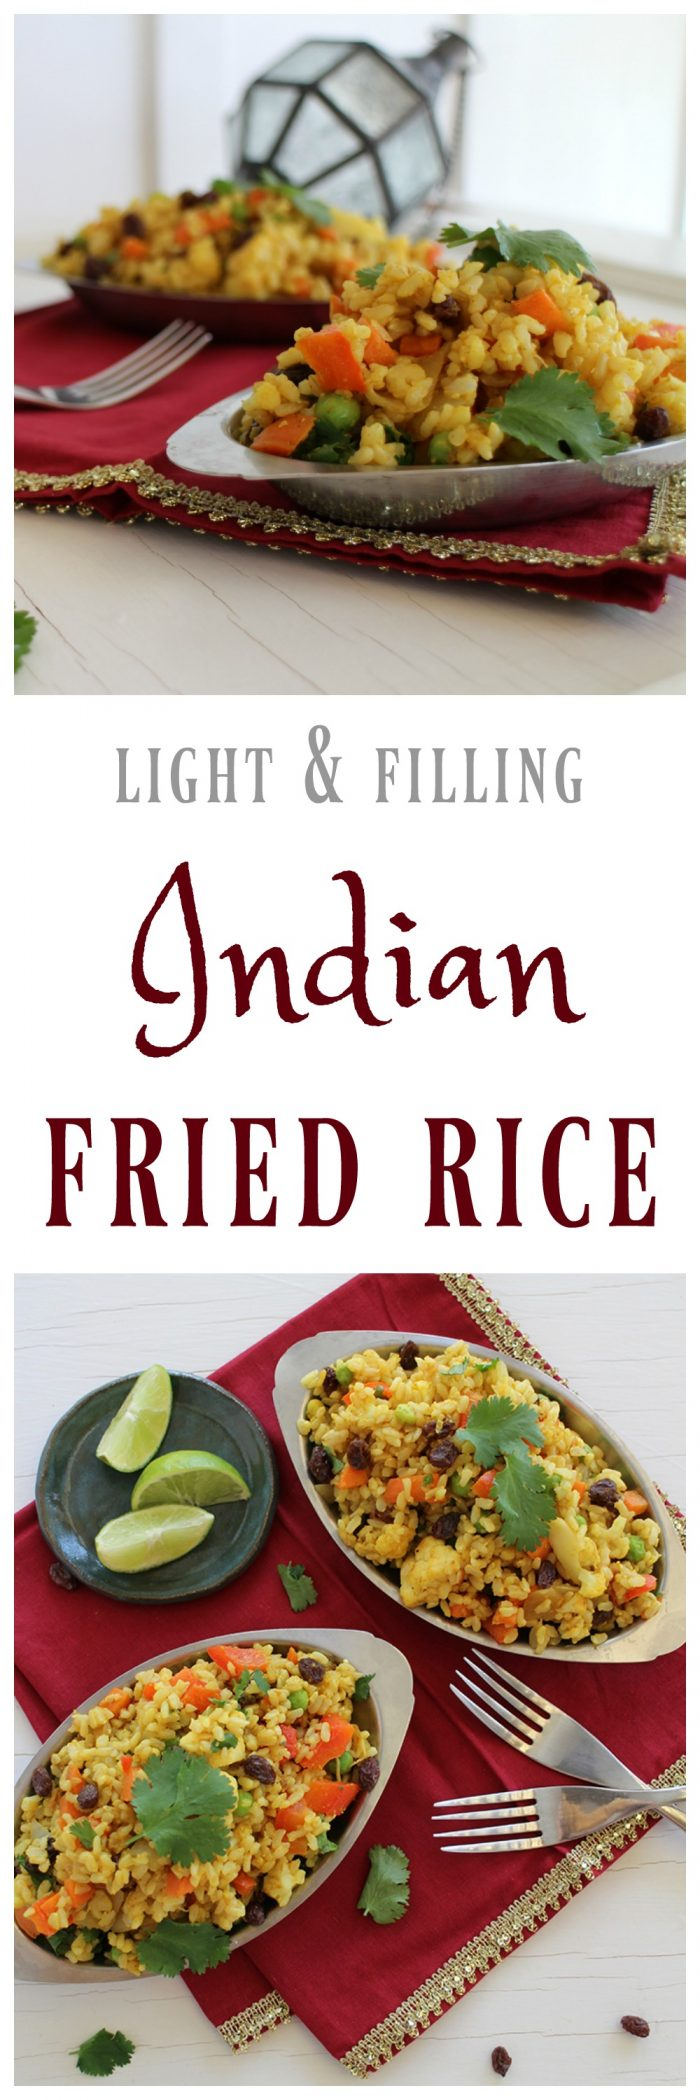 Light & Filling Indian Fried Rice gets its flavor from fresh cilantro, lightly sautéed garlic and ginger, and spices like cumin, coriander, and turmeric. #vegan #vegetarian #indian #rice #side